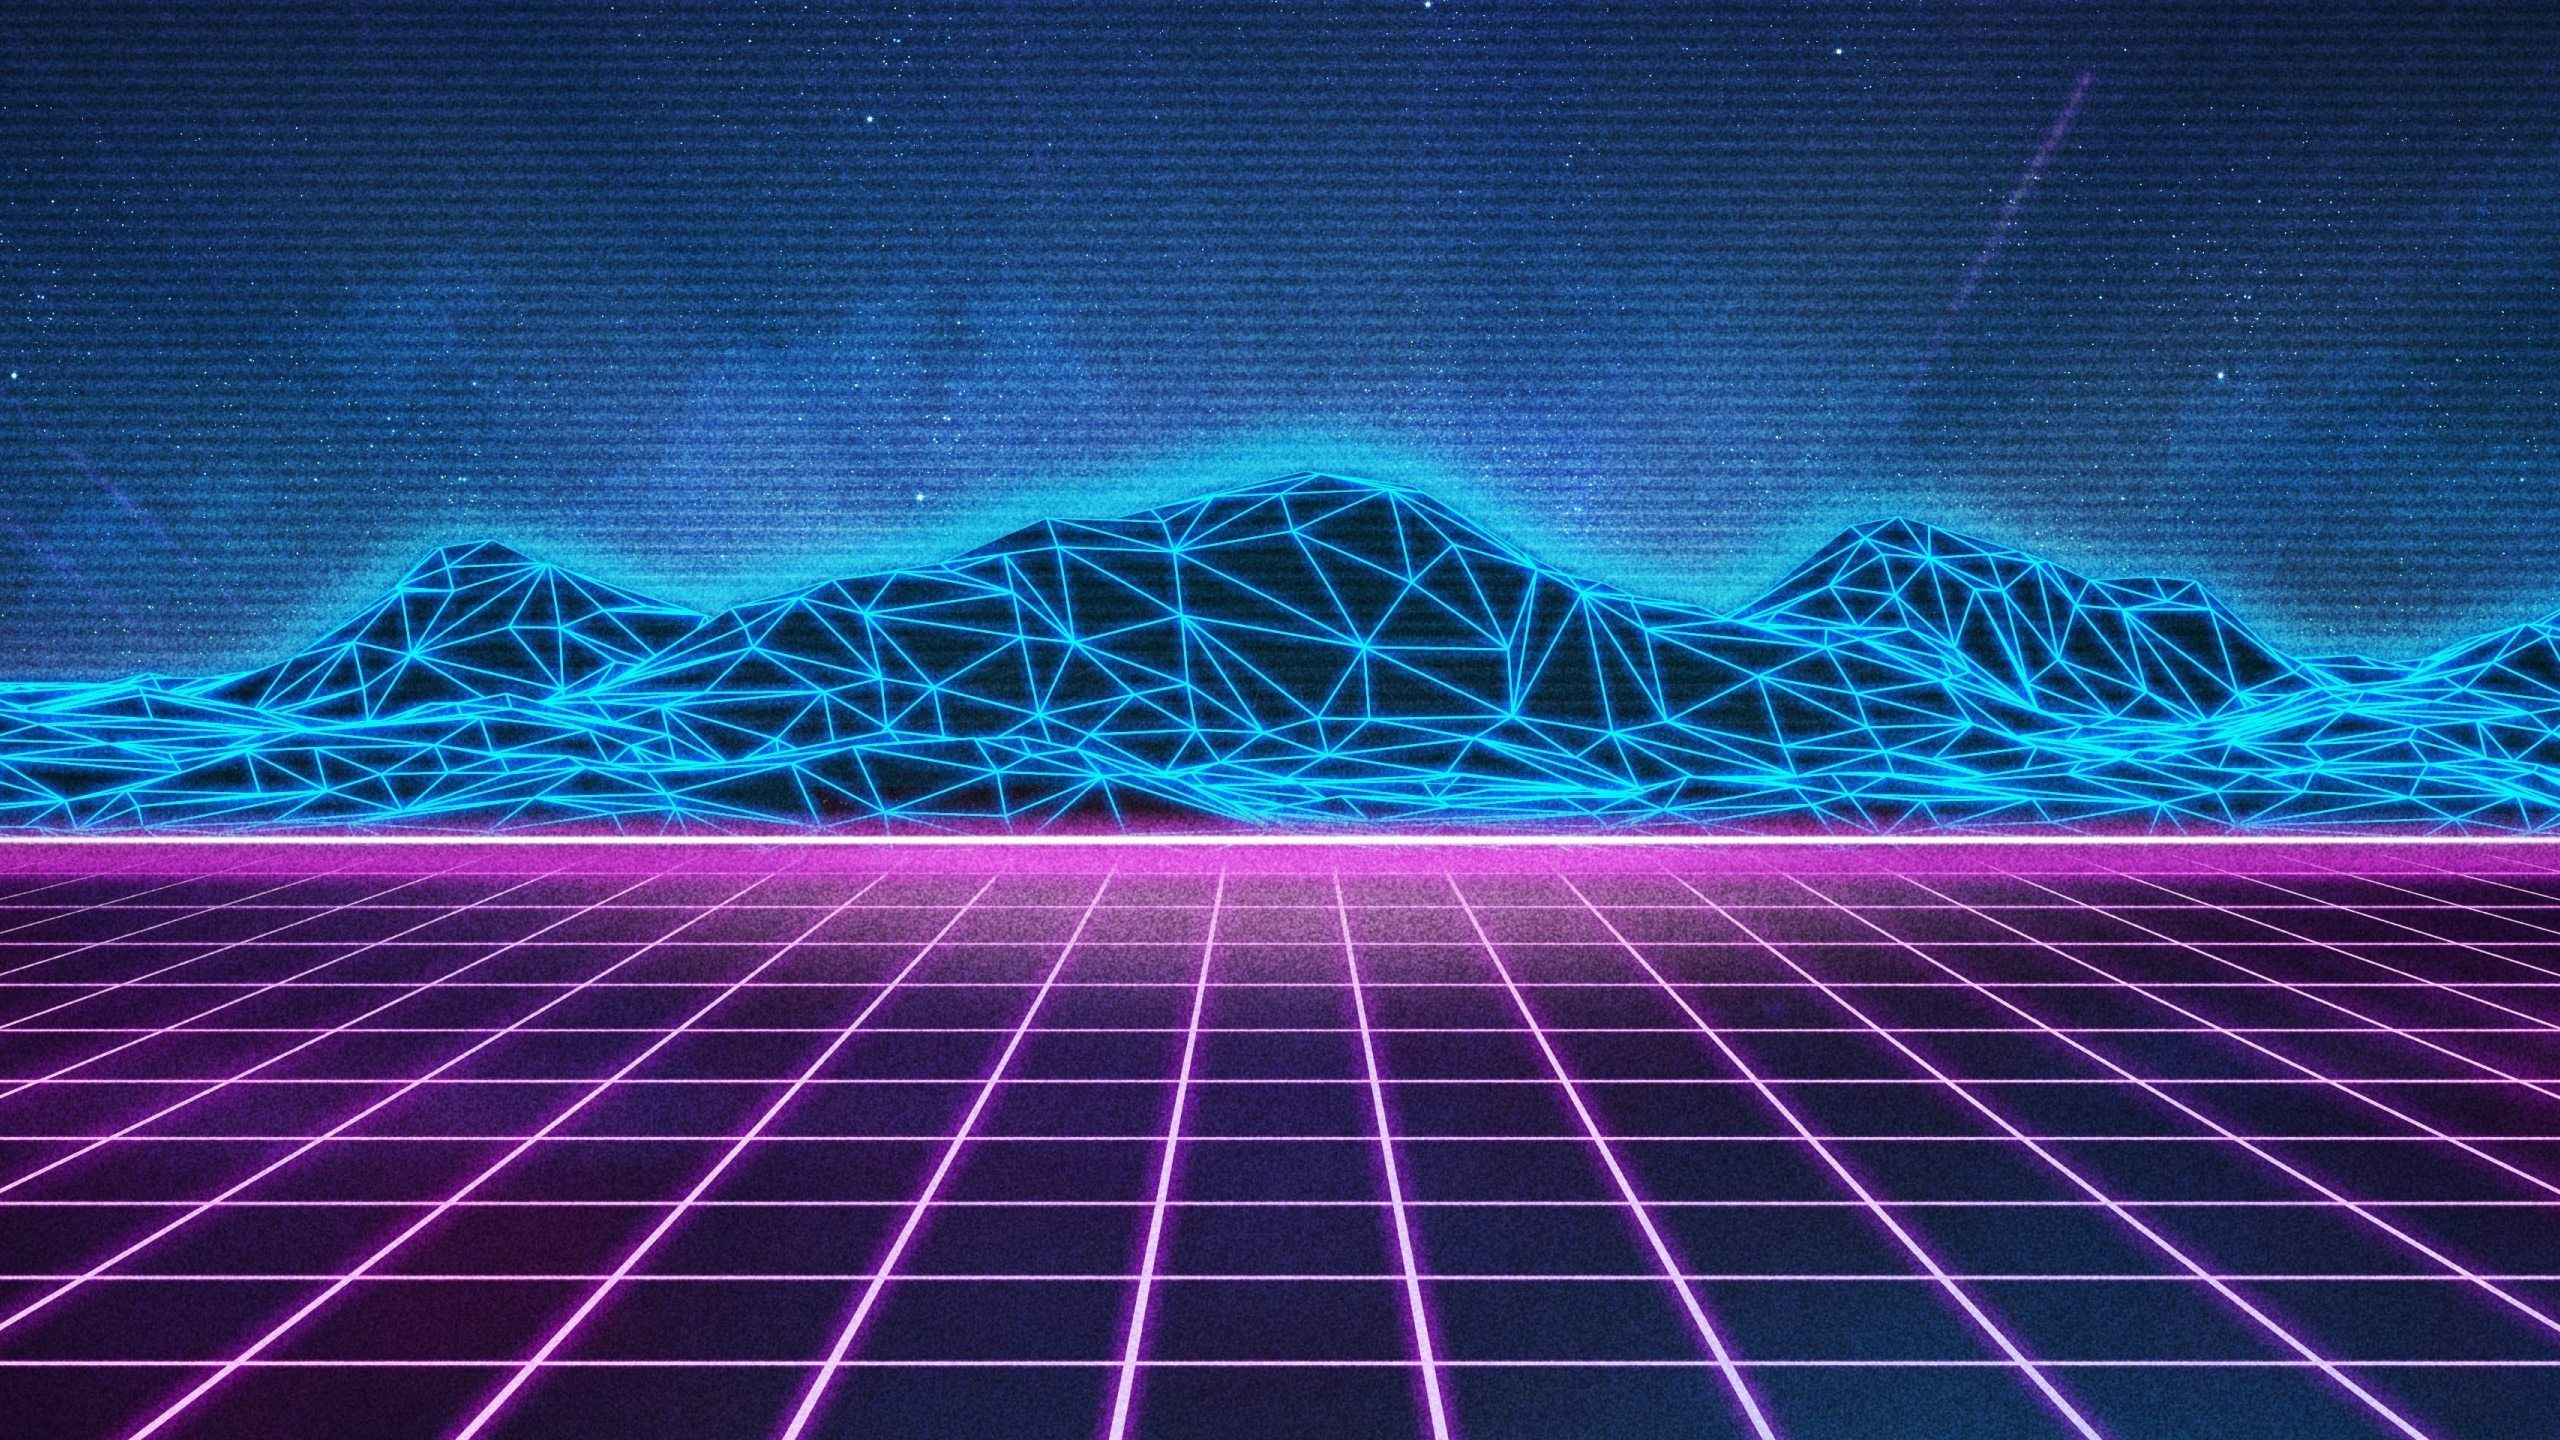 2560x1440 Retro Wave 1440p Resolution Wallpaper Hd Artist 4k Wallpapers Images Photos And Background